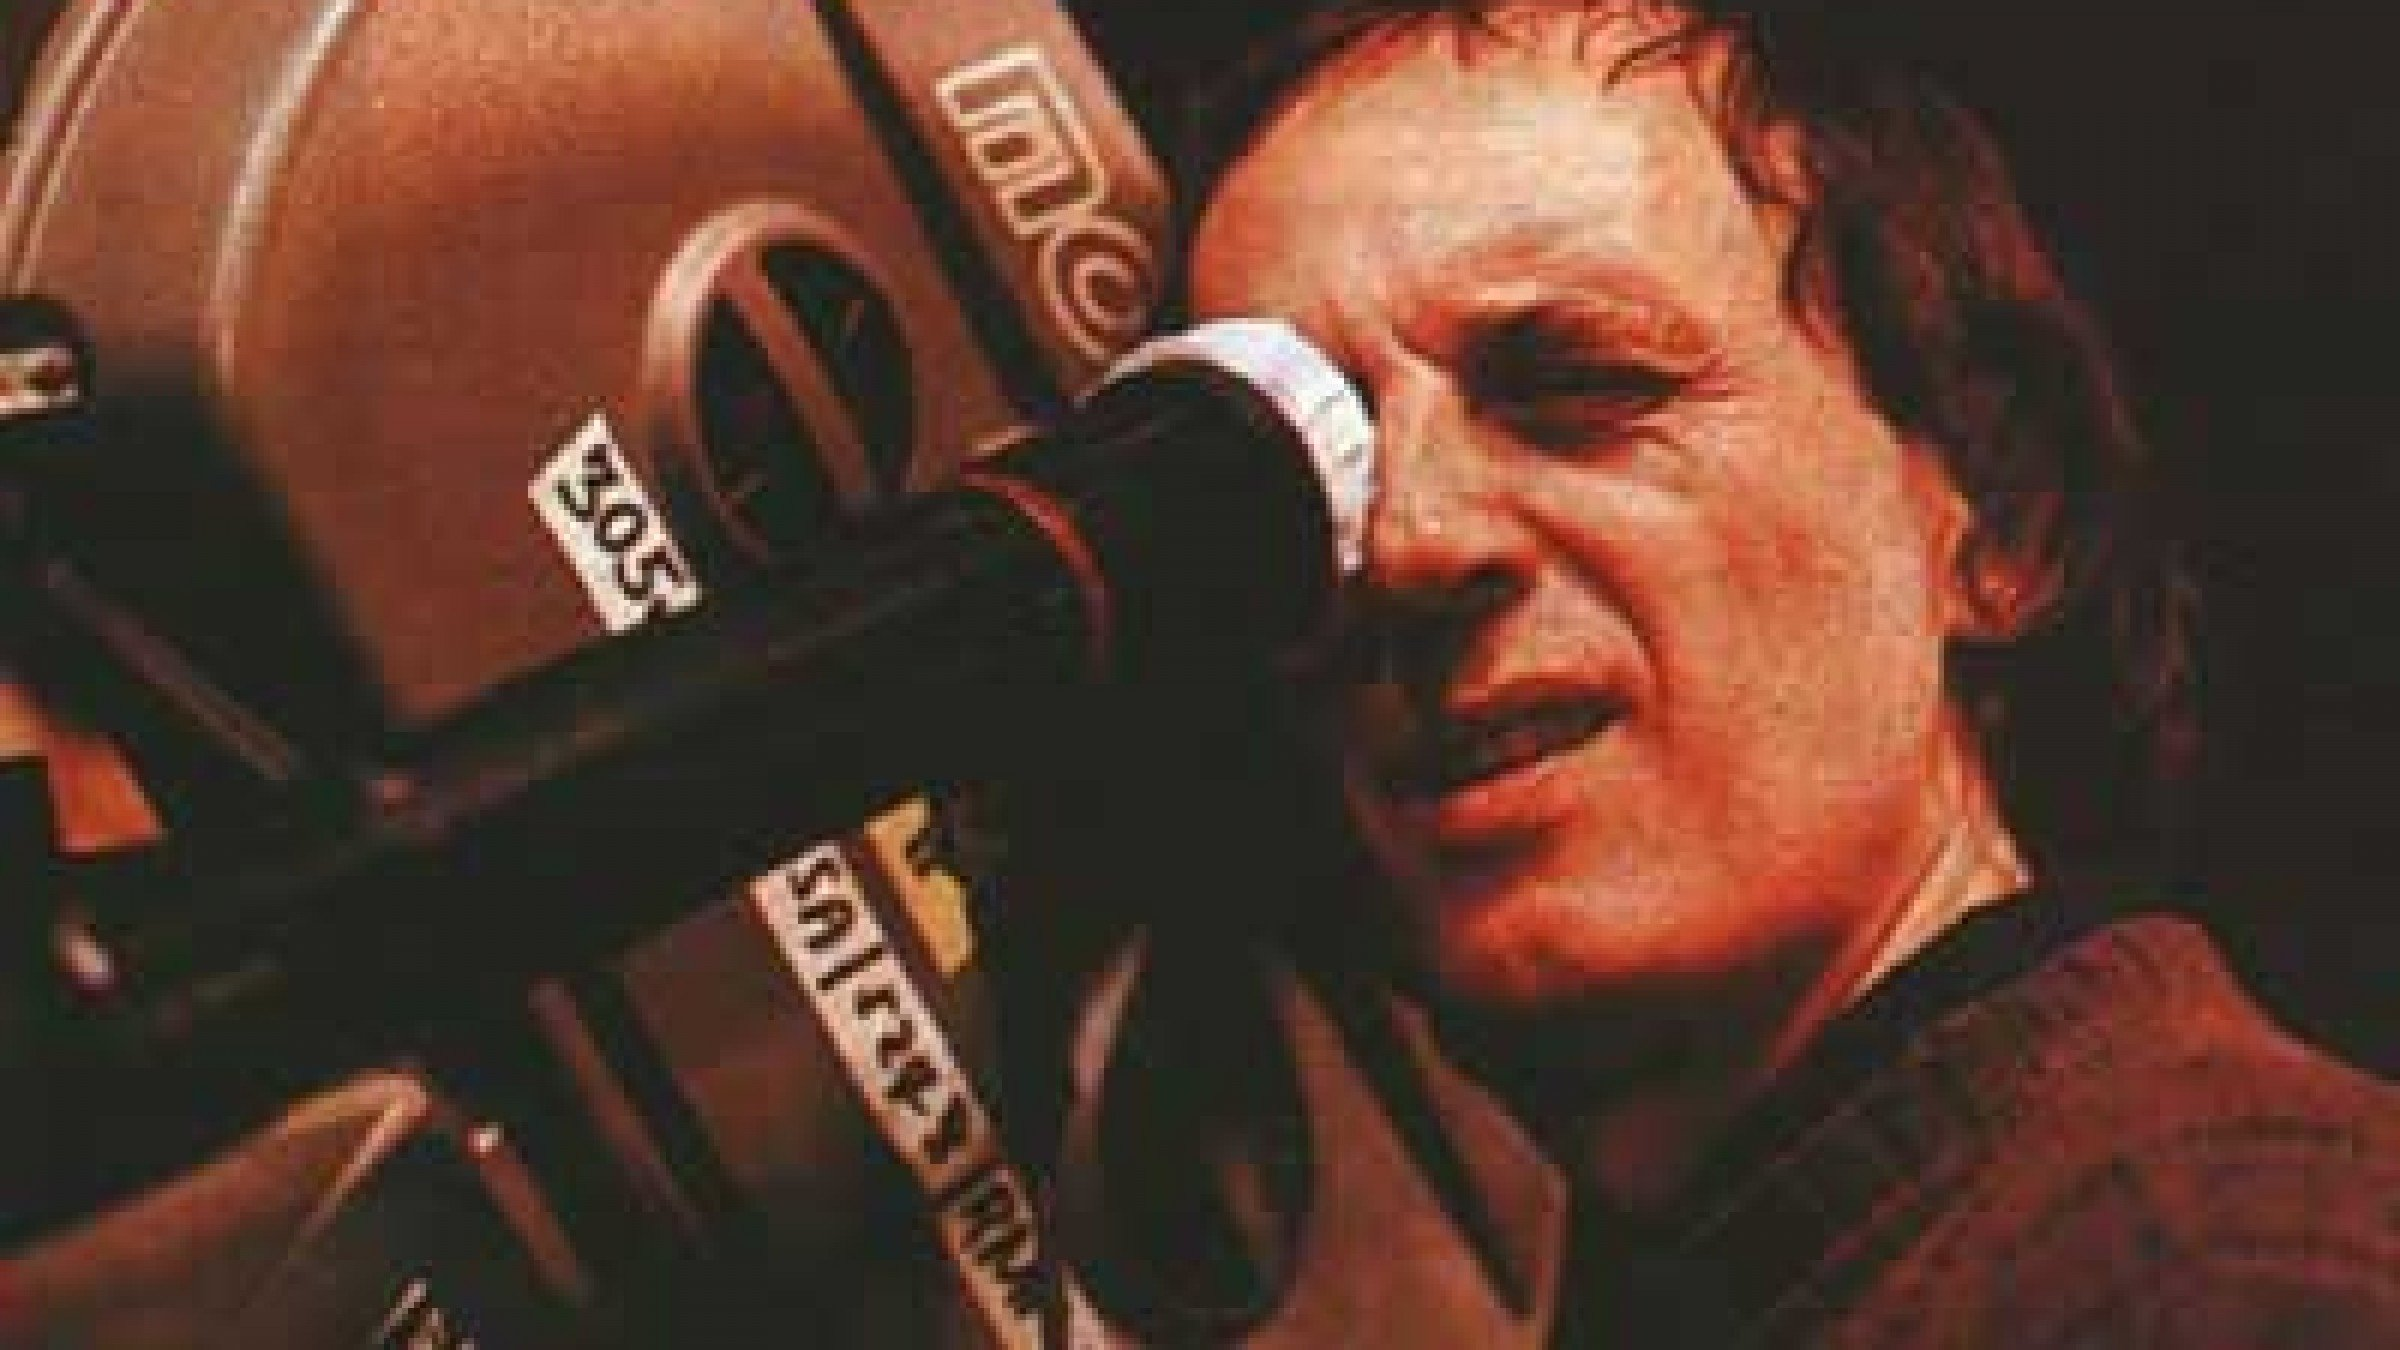 Watch This Documentary on the Director That Made Blood Beautiful: Dario Argento